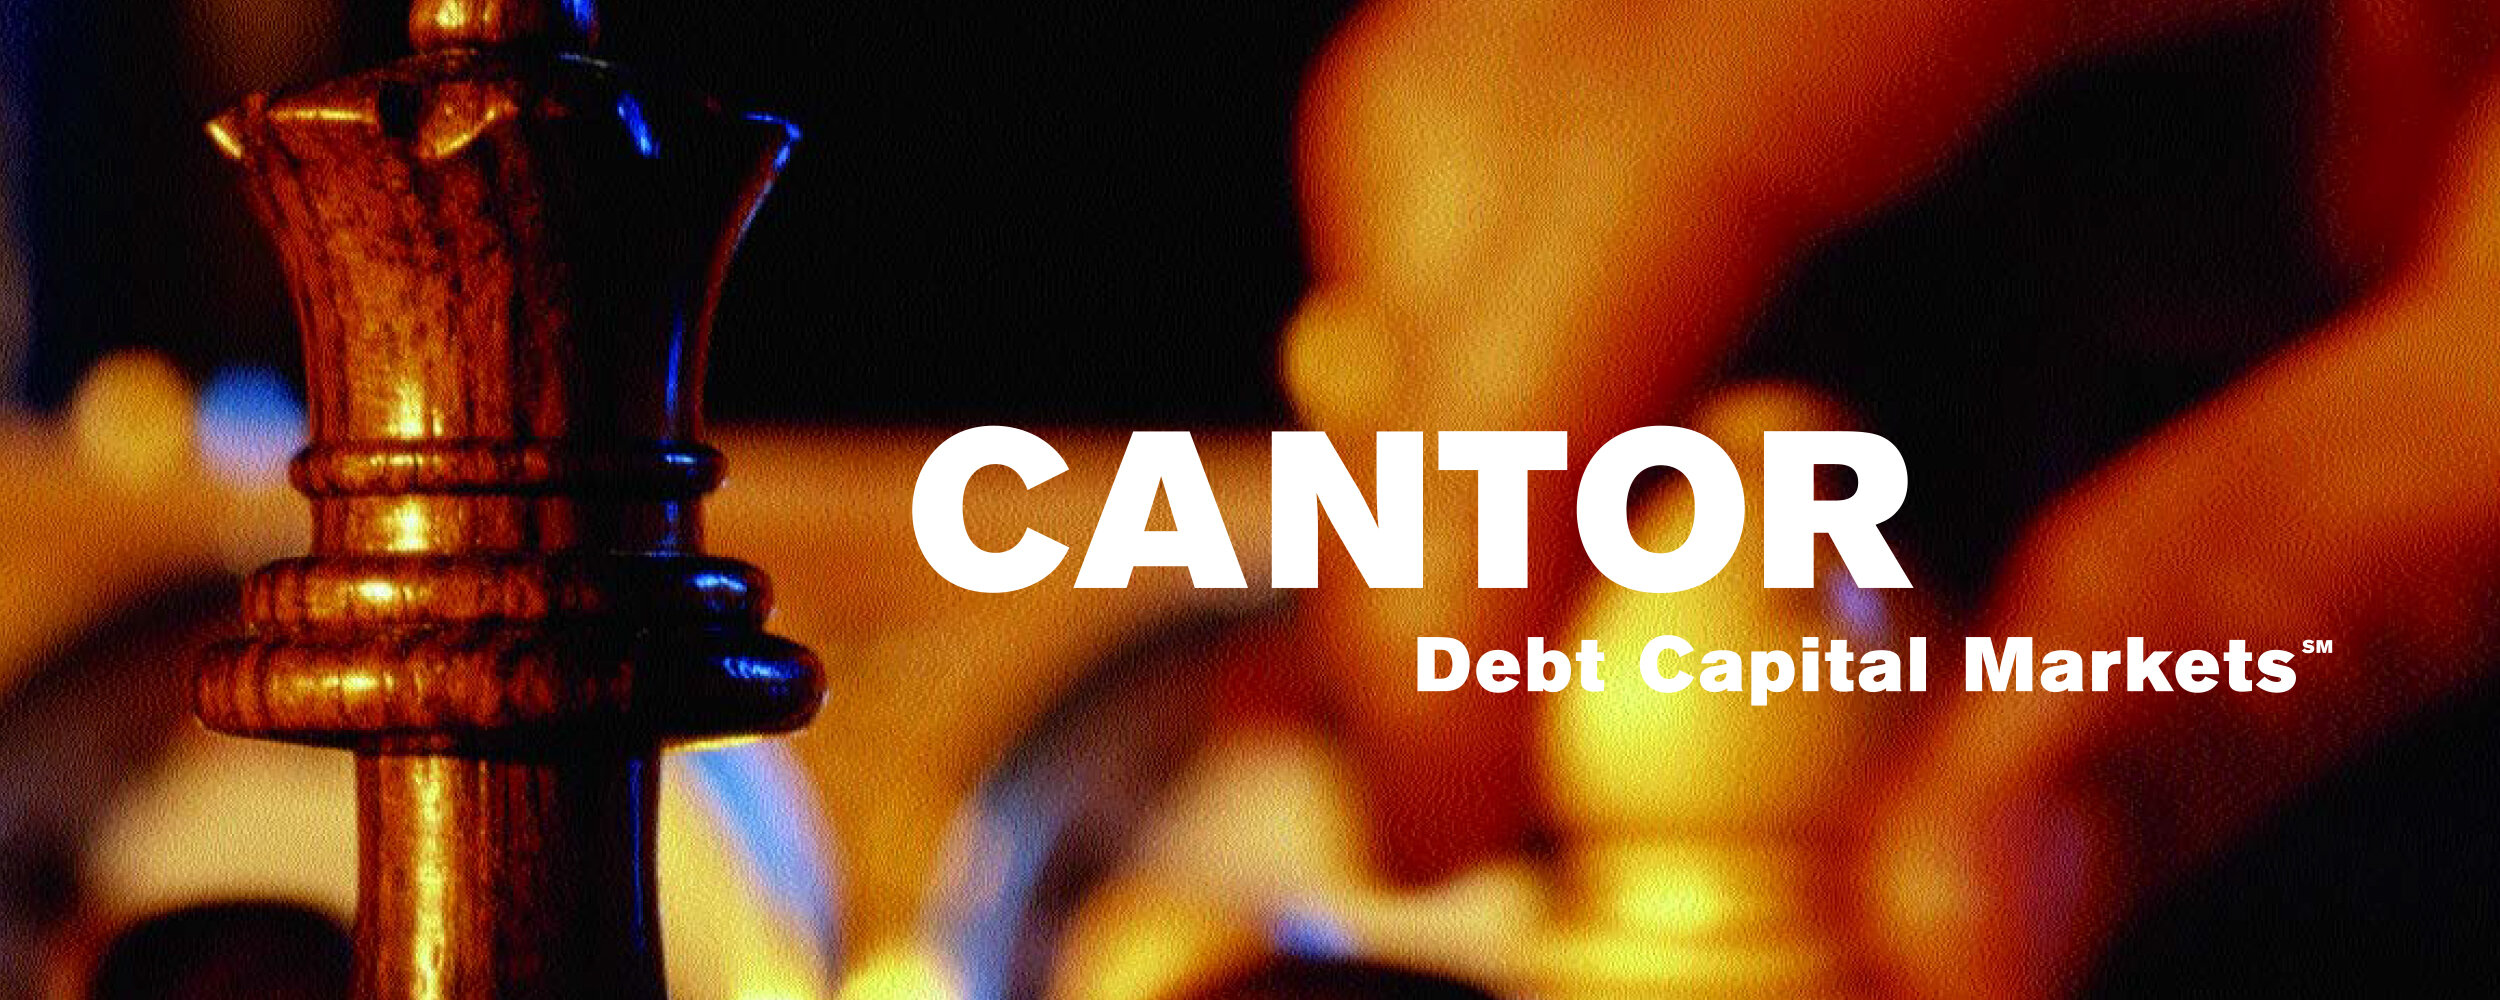 work-project_cantor-01.jpg